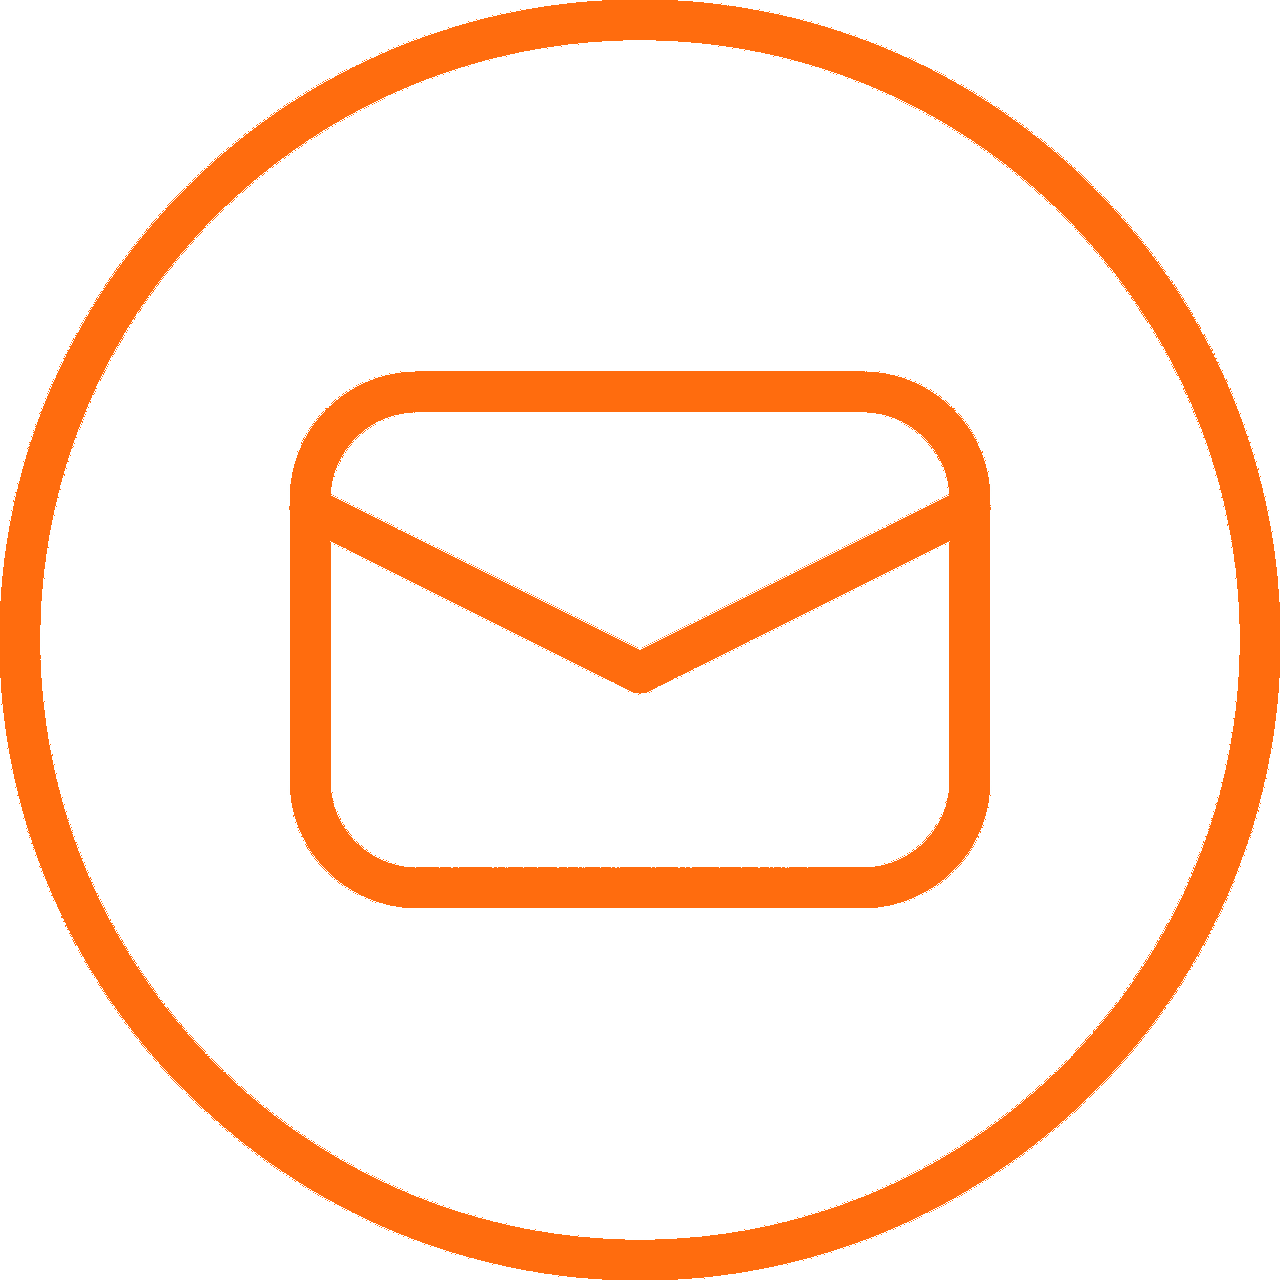 Symbol for a email.